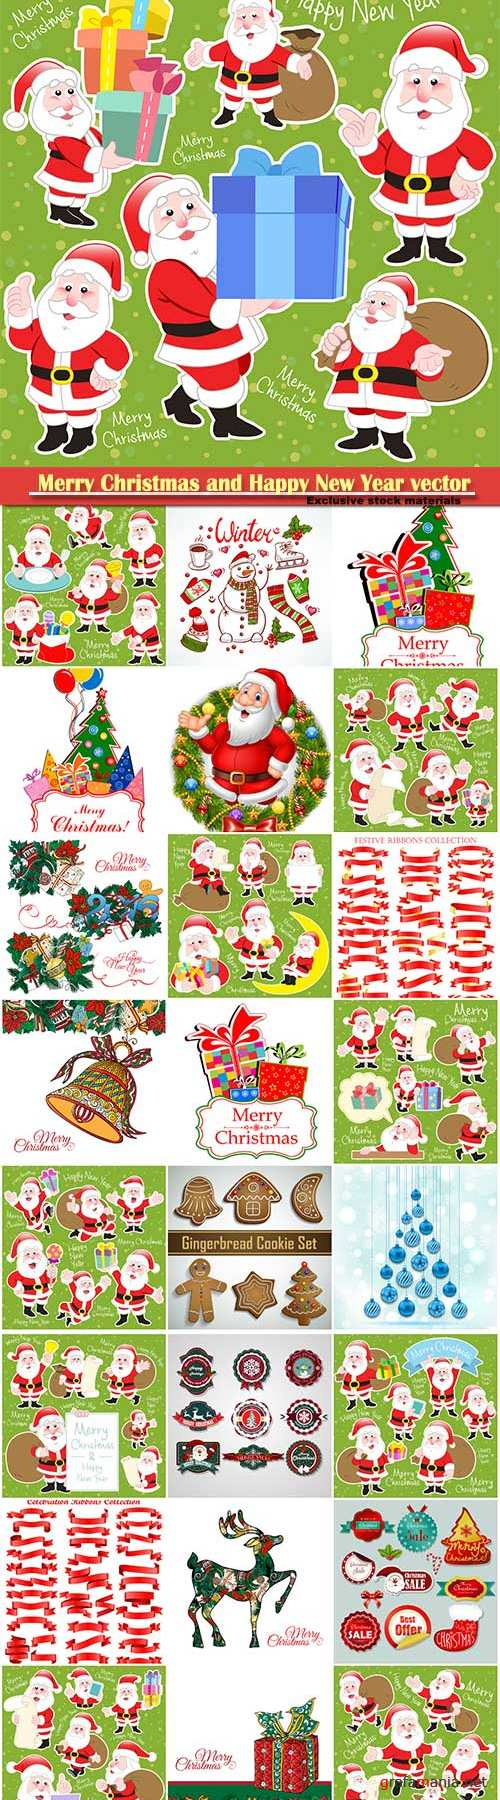 Merry Christmas and Happy New Year vector design # 27